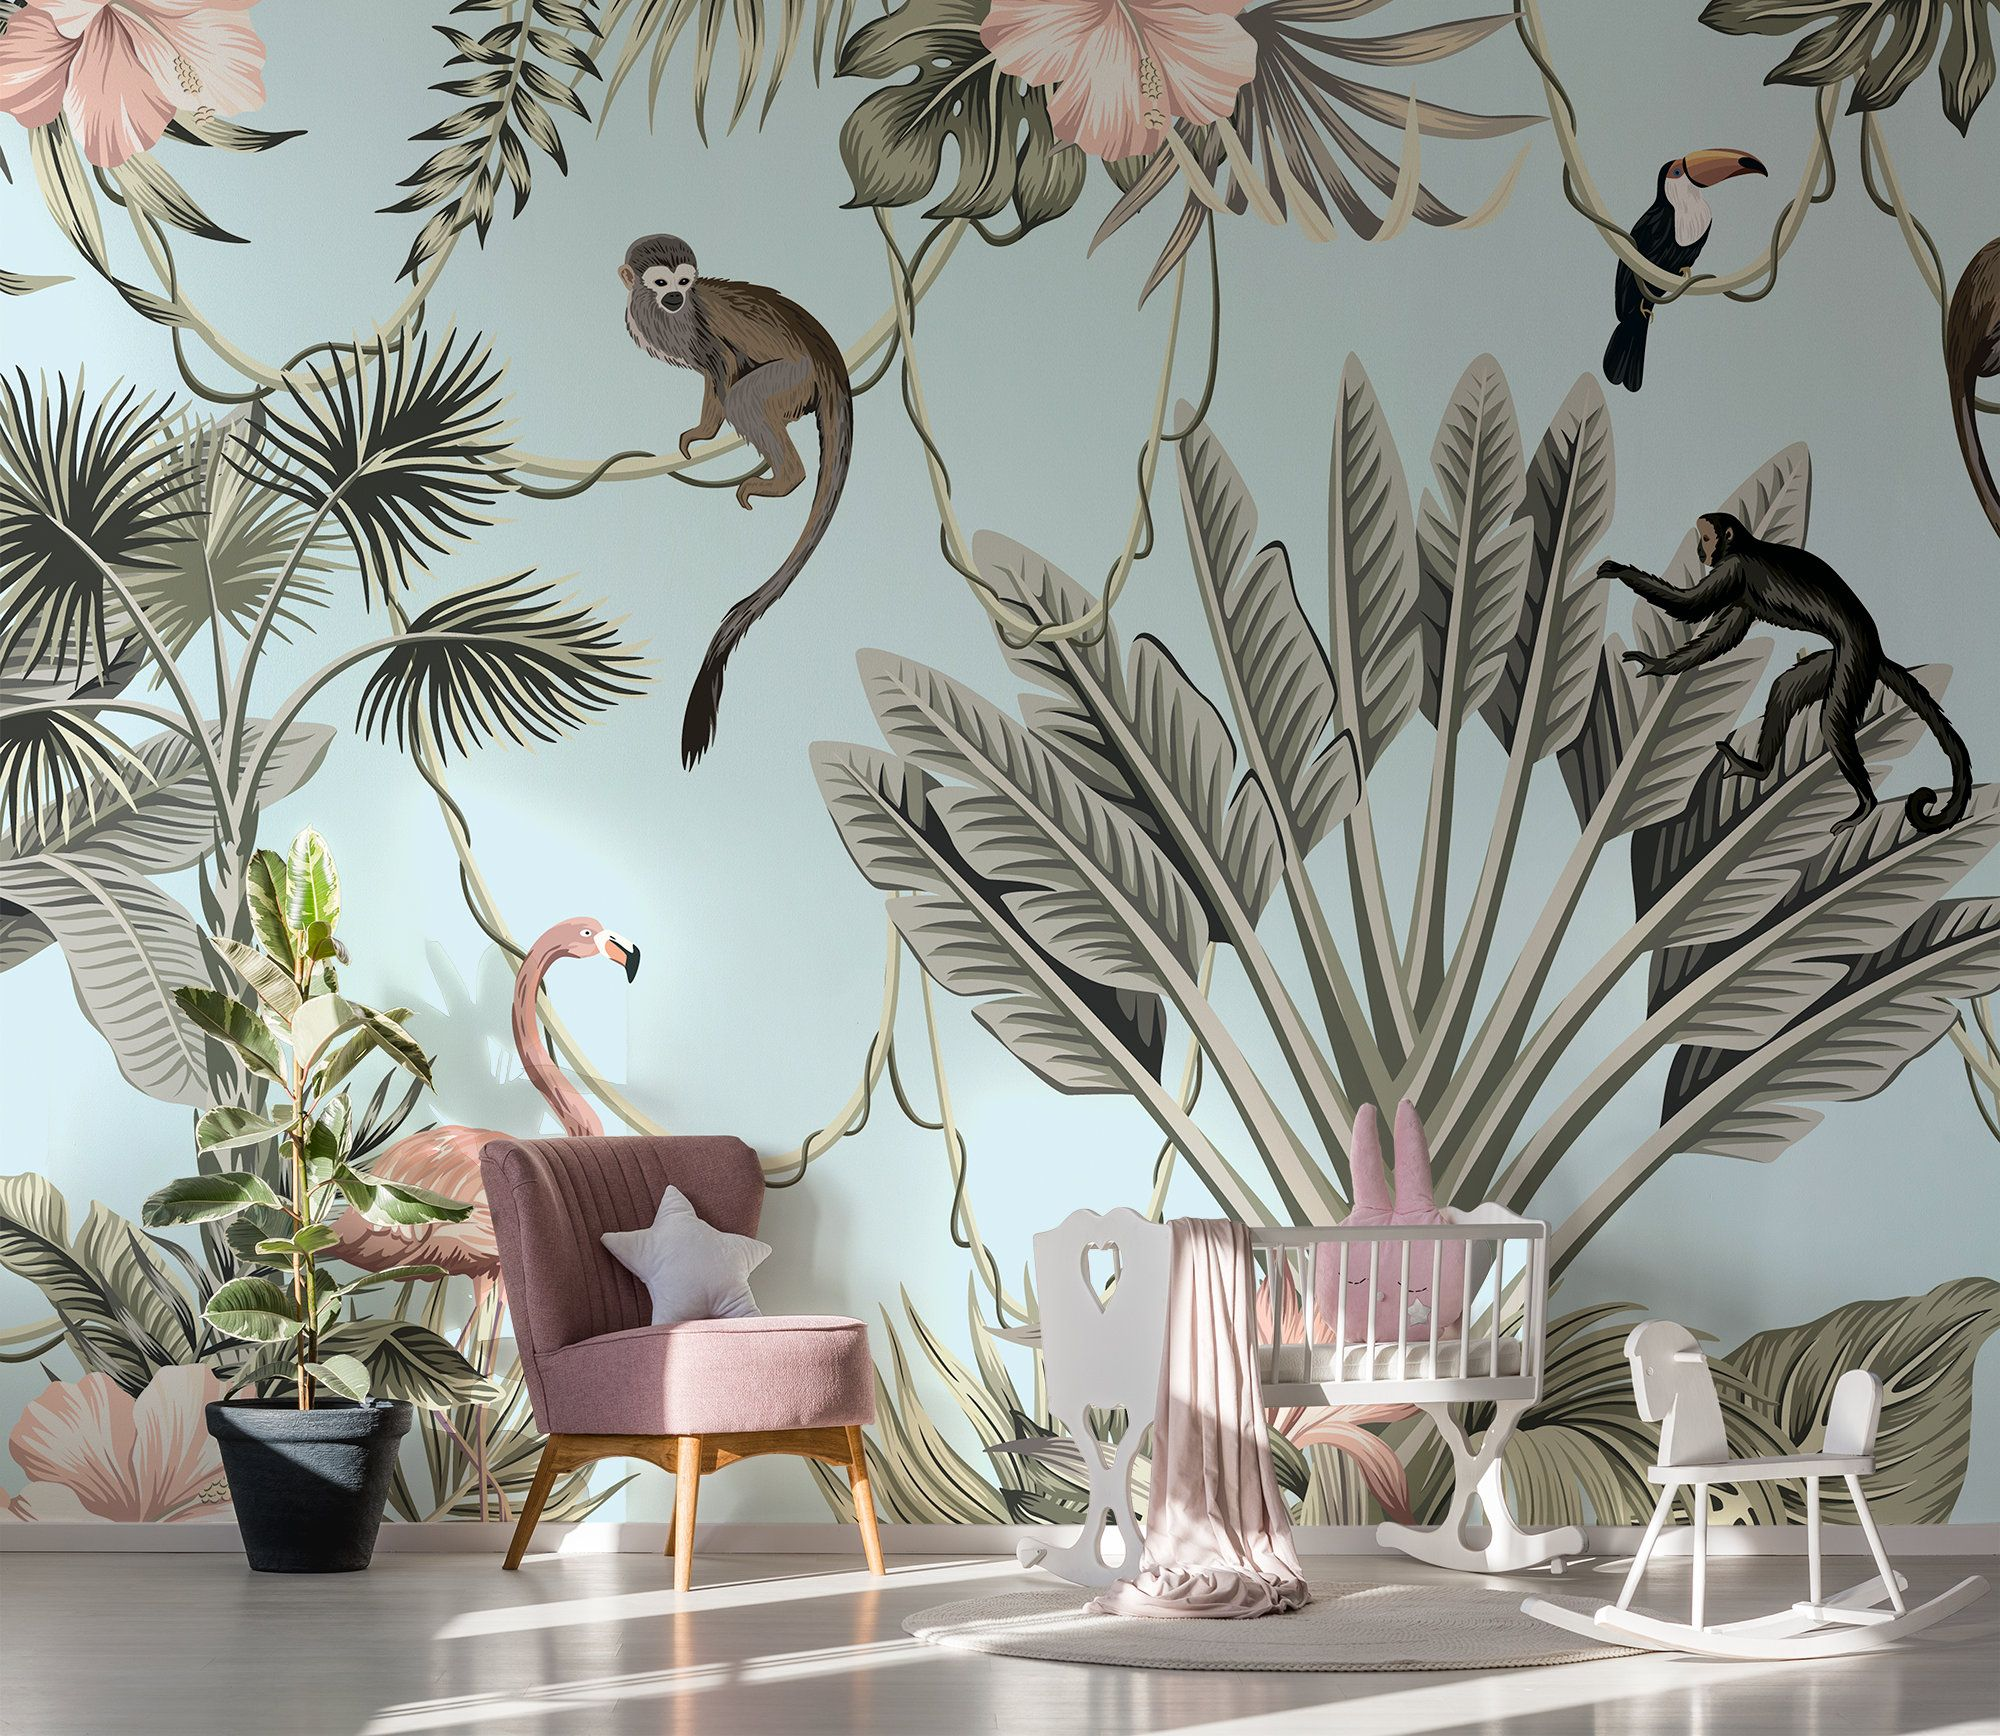 Paradise Wall Mural For Nursery Peel And Stick Wallpaper Etsy Tropical Wallpaper Peel And Stick Wallpaper Forest Wall Mural